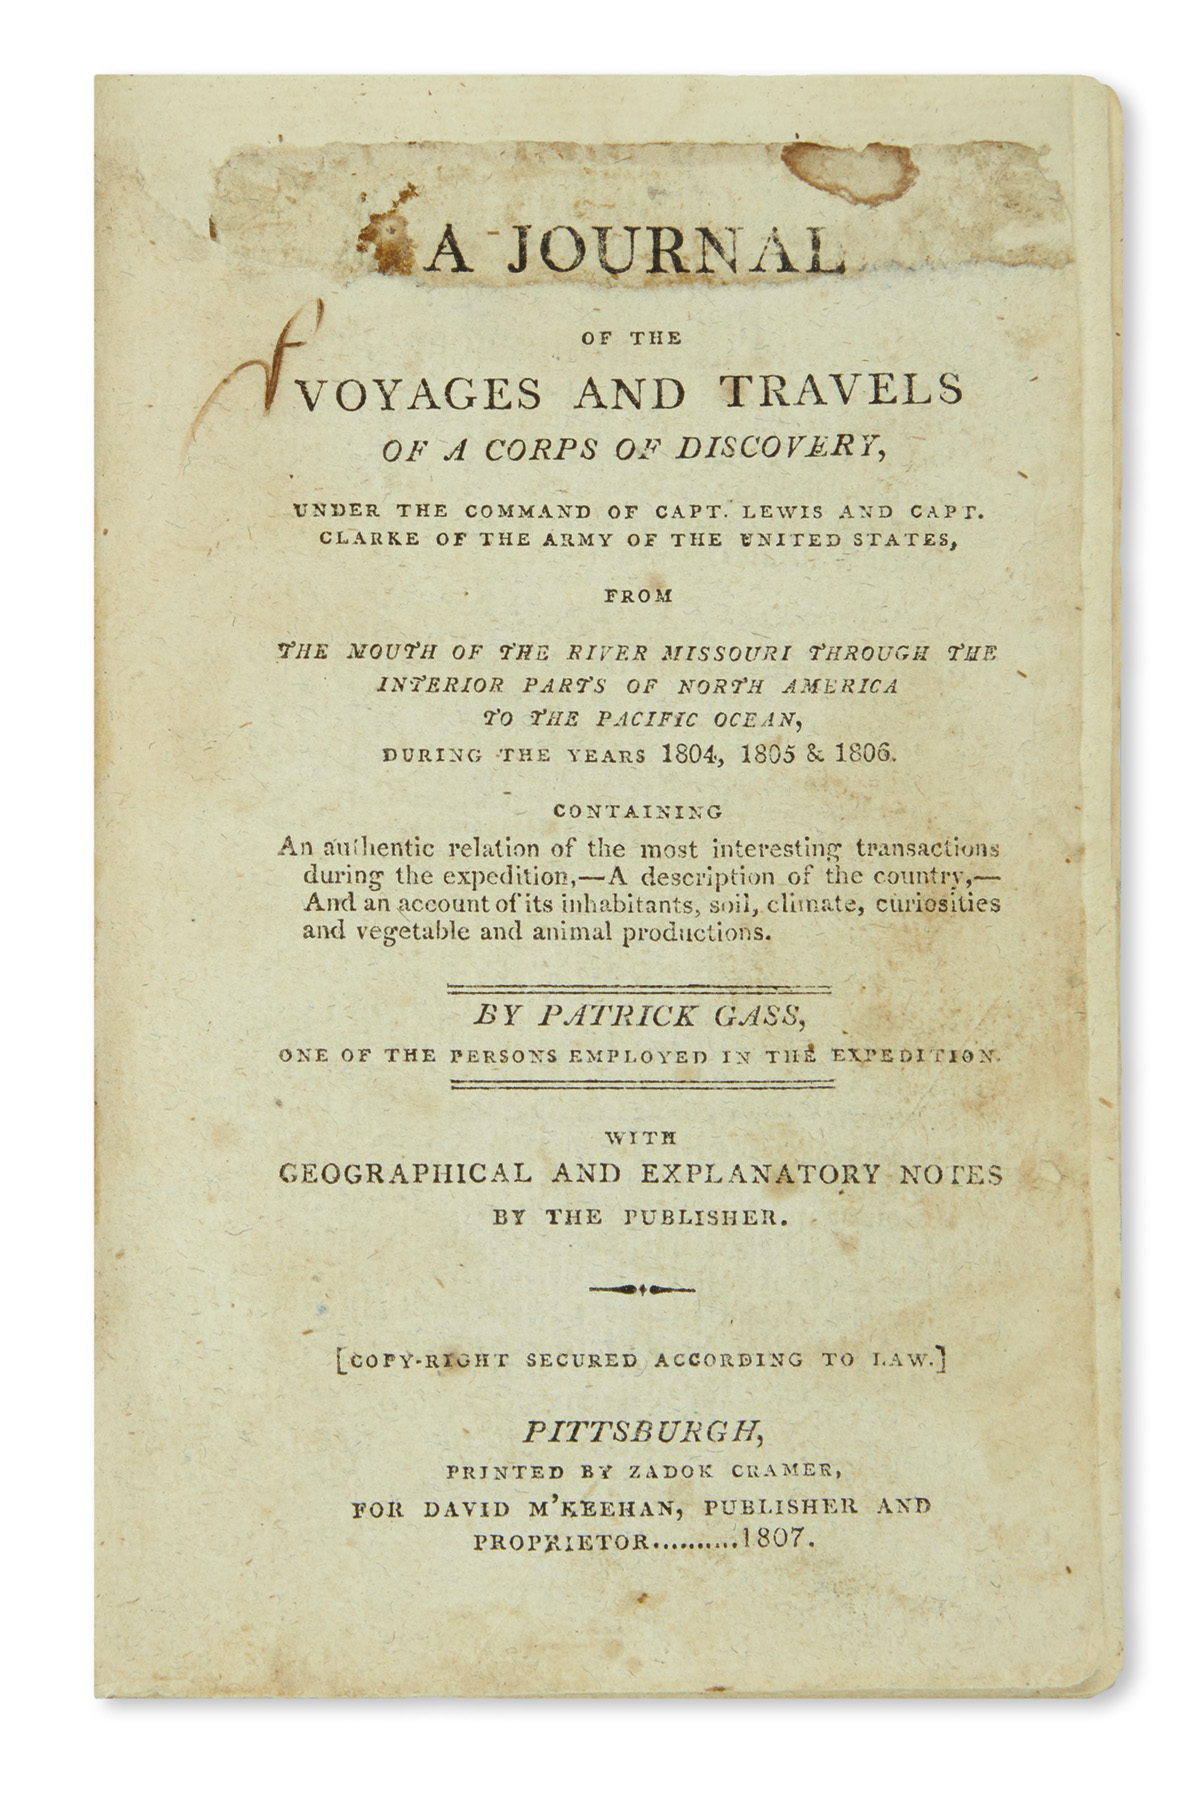 (LEWIS-AND-CLARK)-Gass-Patrick-A-Journal-of-the-Voyages-and-